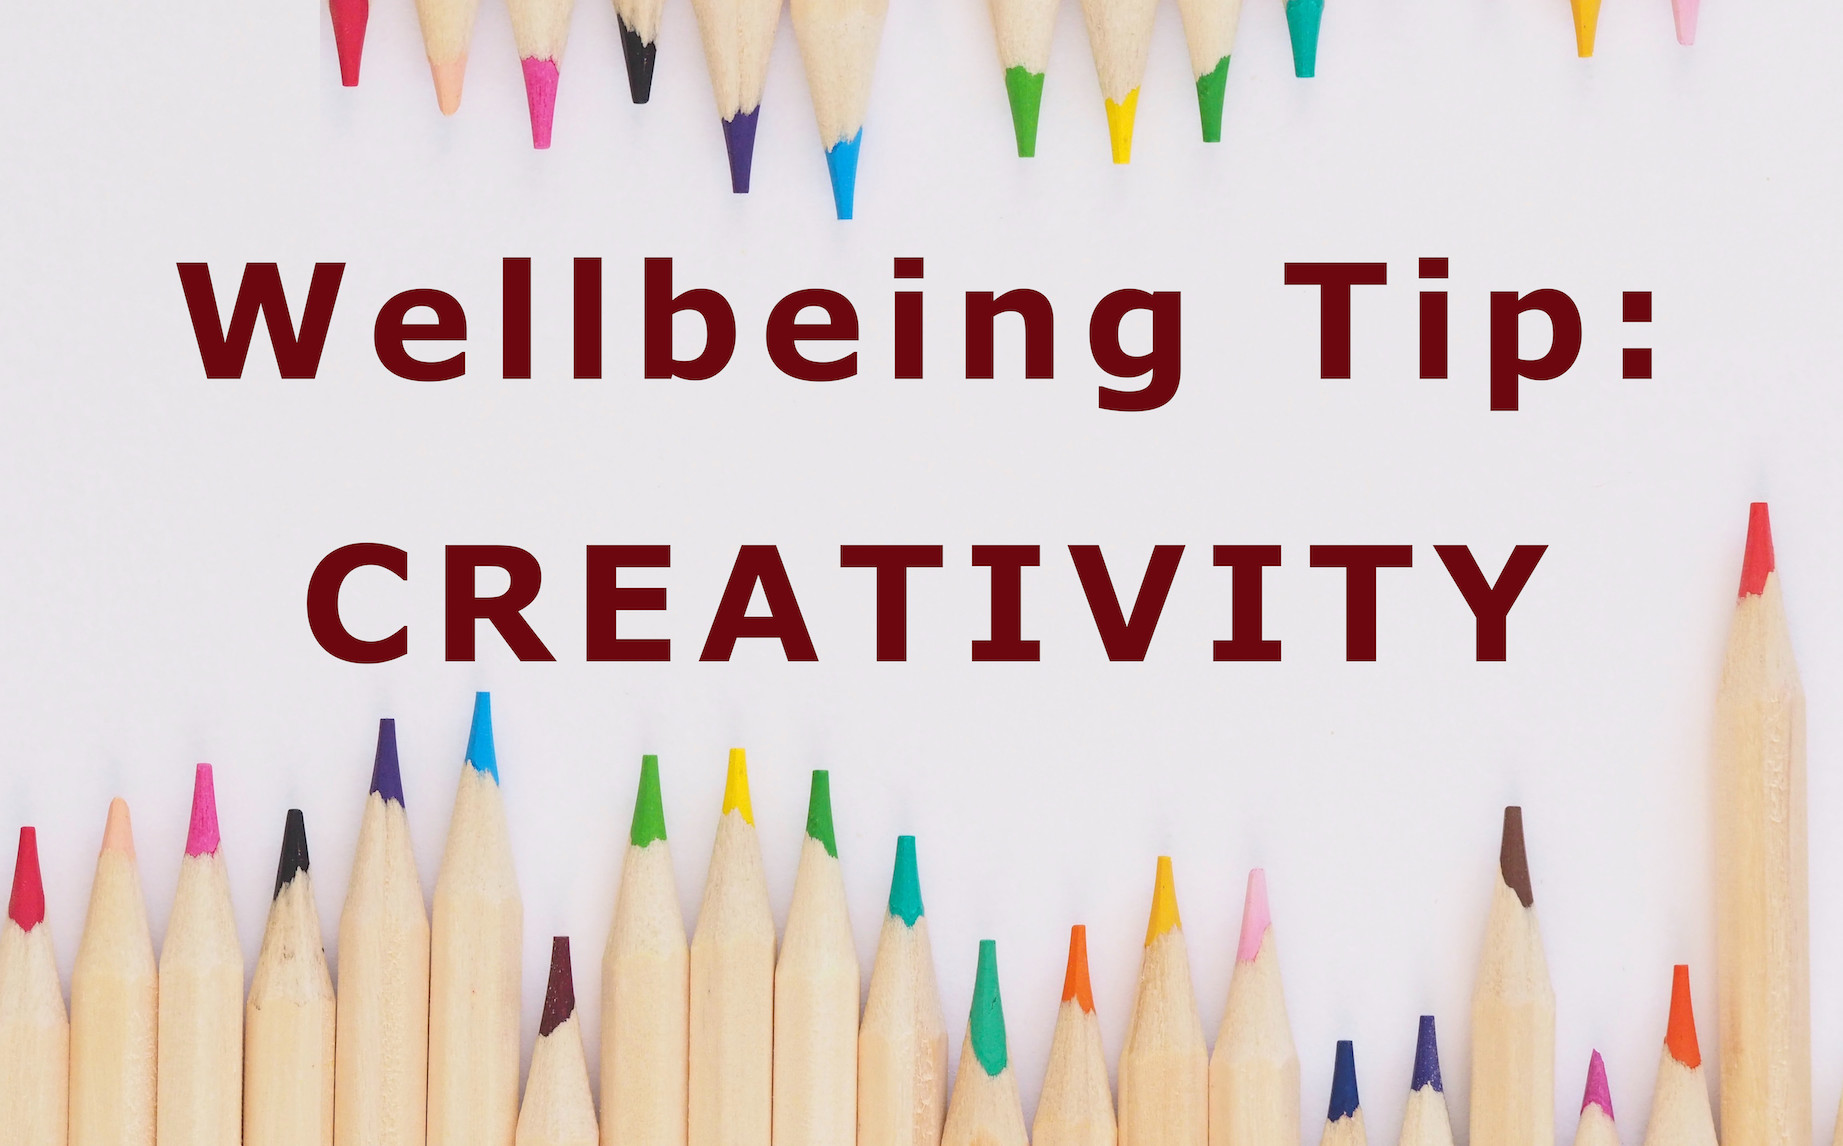 Wellbeing Tip: Creativity